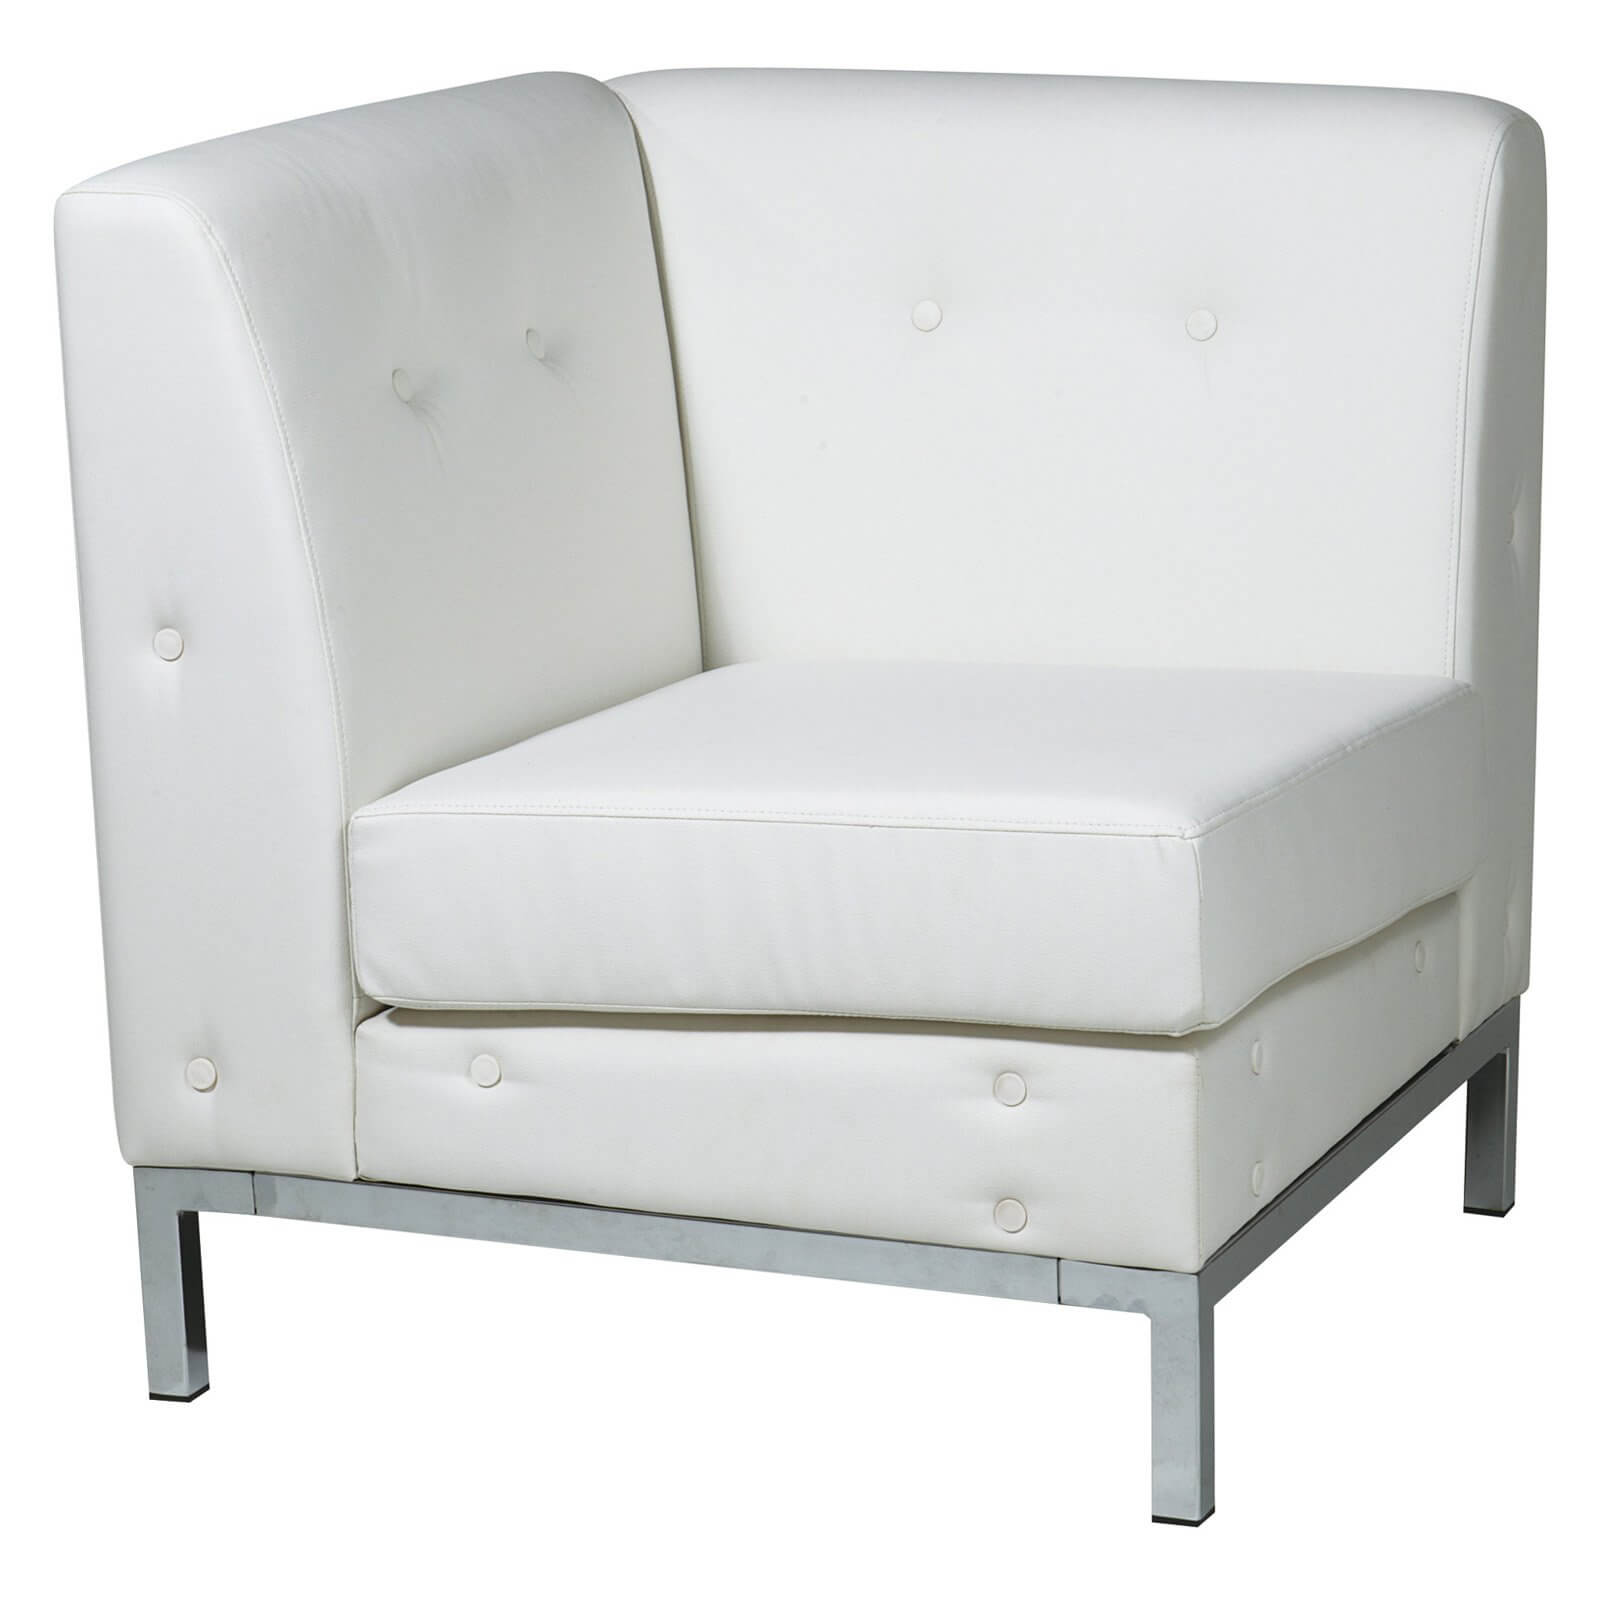 Unique corner design chair from Office Star features faux leather white upholstery and box-spring seat for durability and comfort. Perfect for placing beautifully and unobtrusively in any living space.